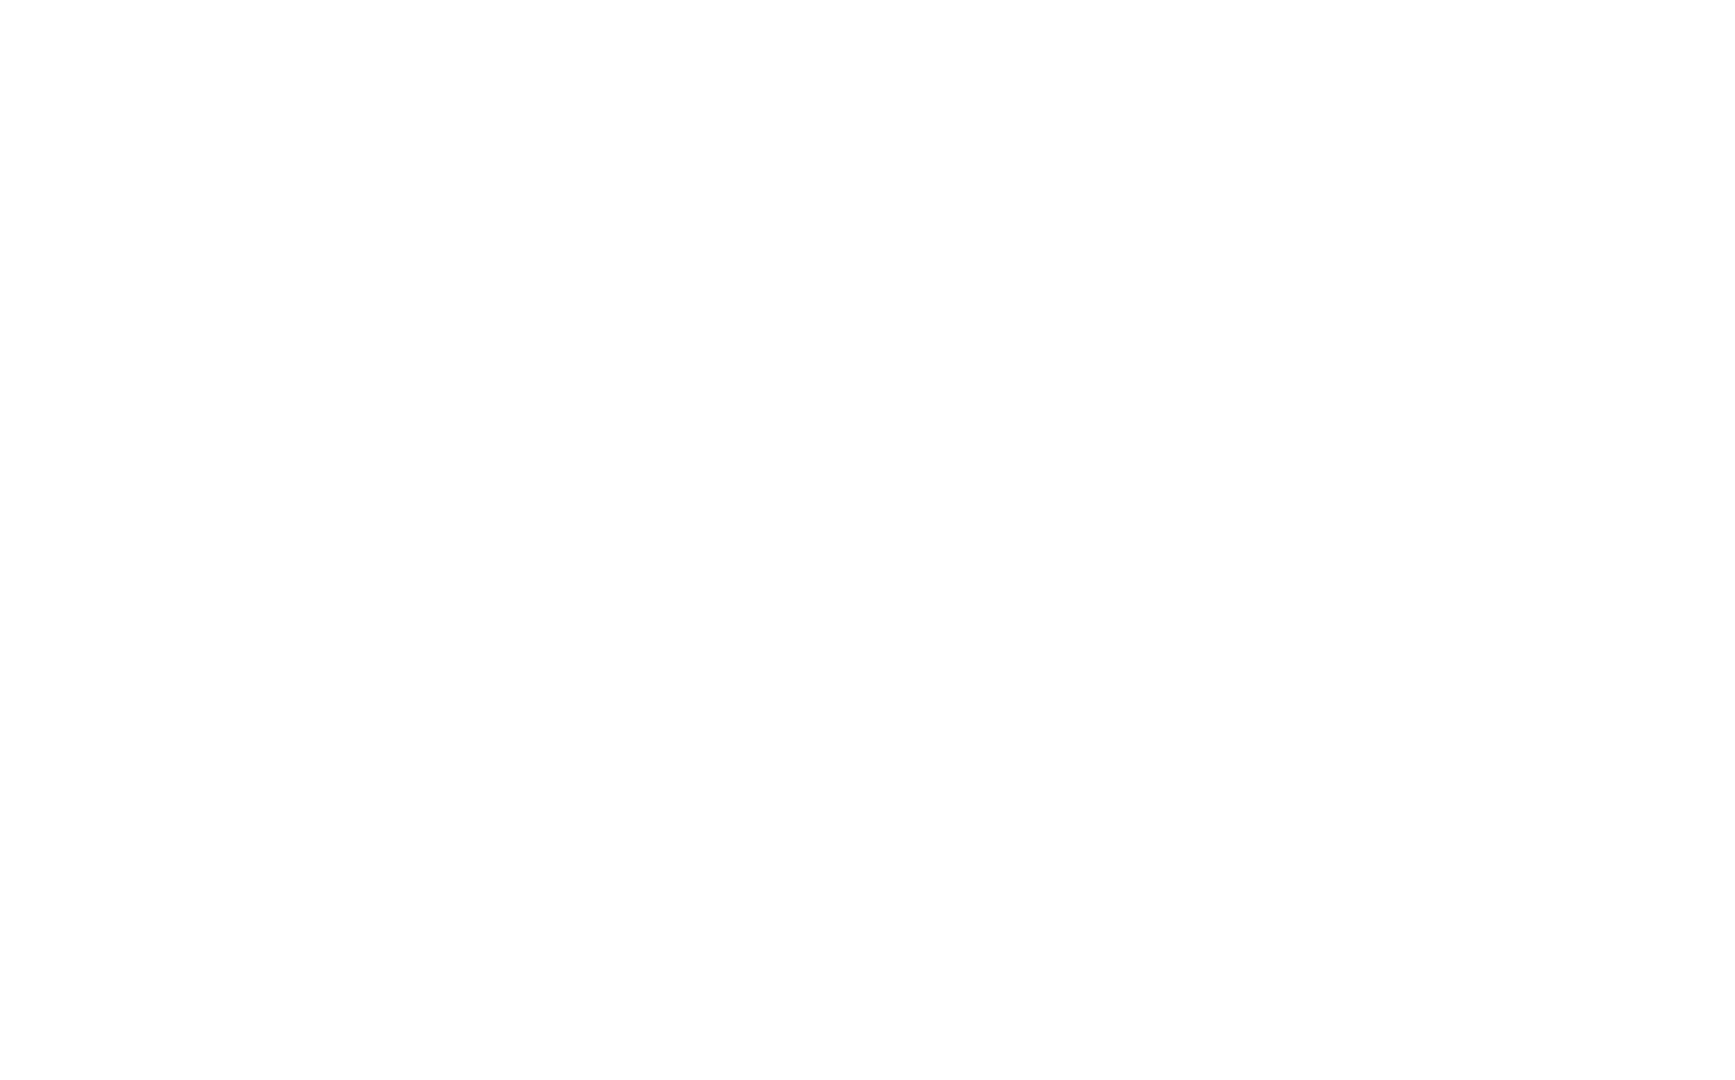 OFFICIAL SELECTION - Holba Pisachi Film